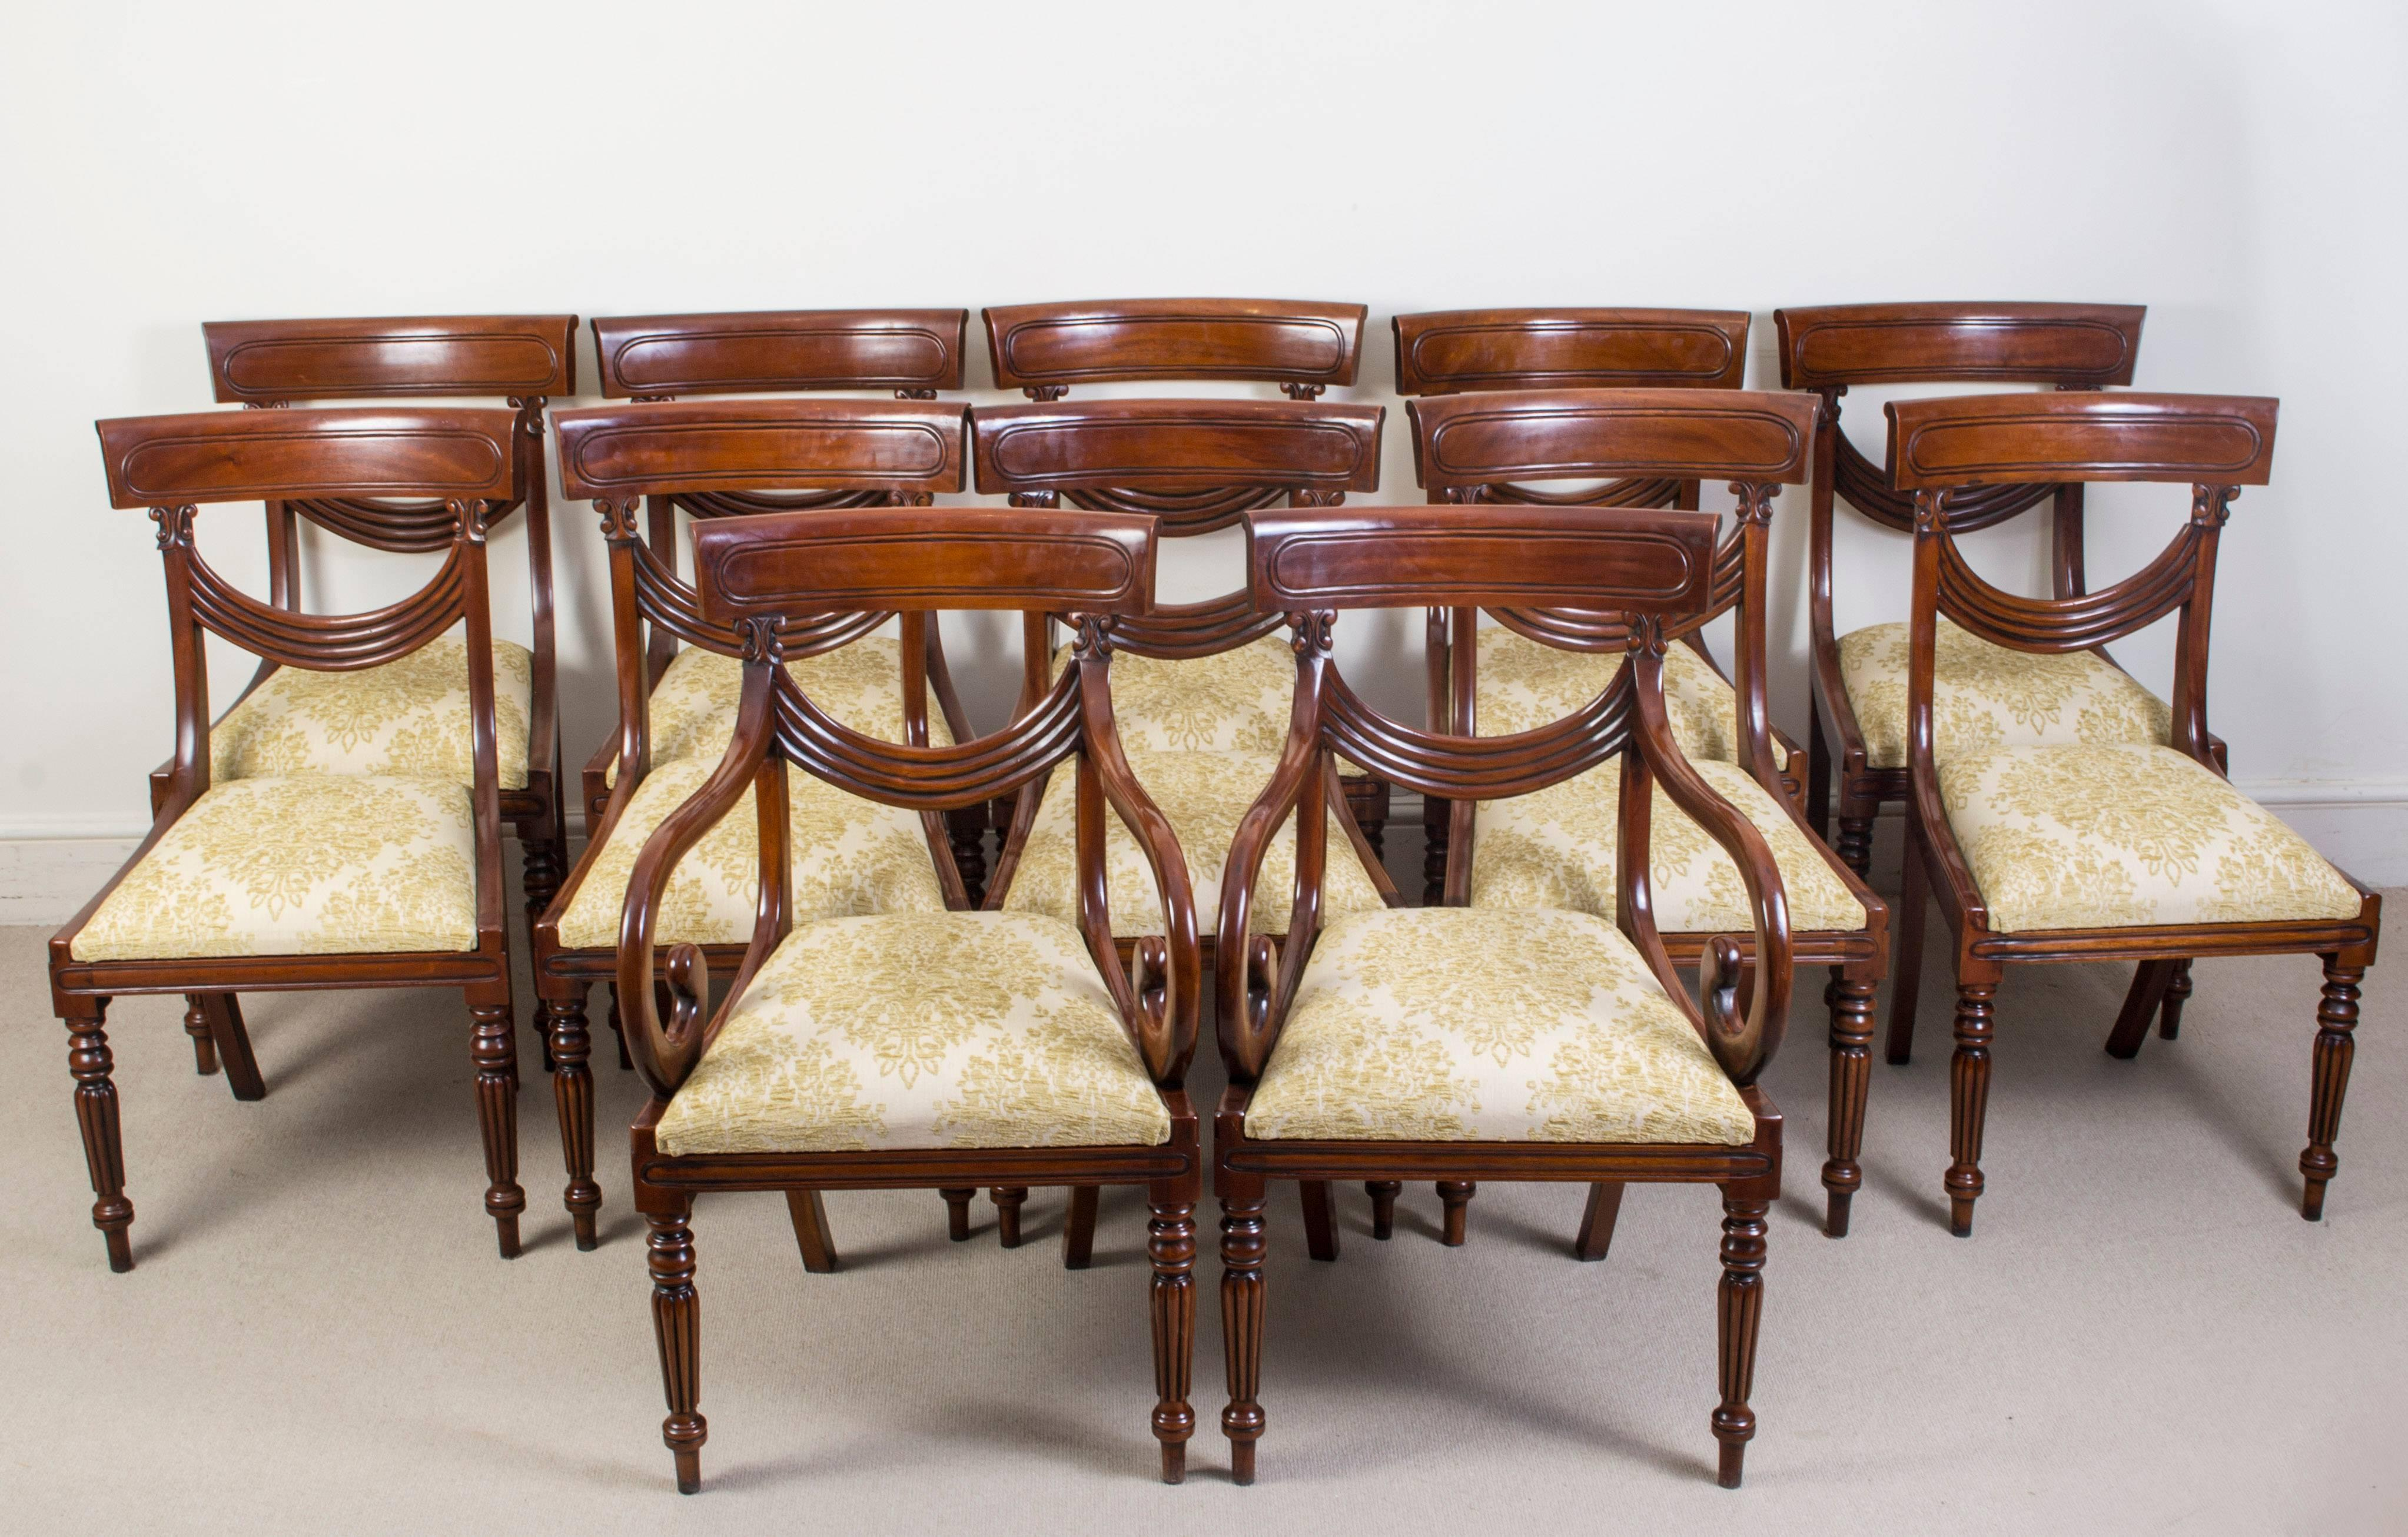 Antique Victorian Dining Table And 12 Chairs 19th Century For Sale 9